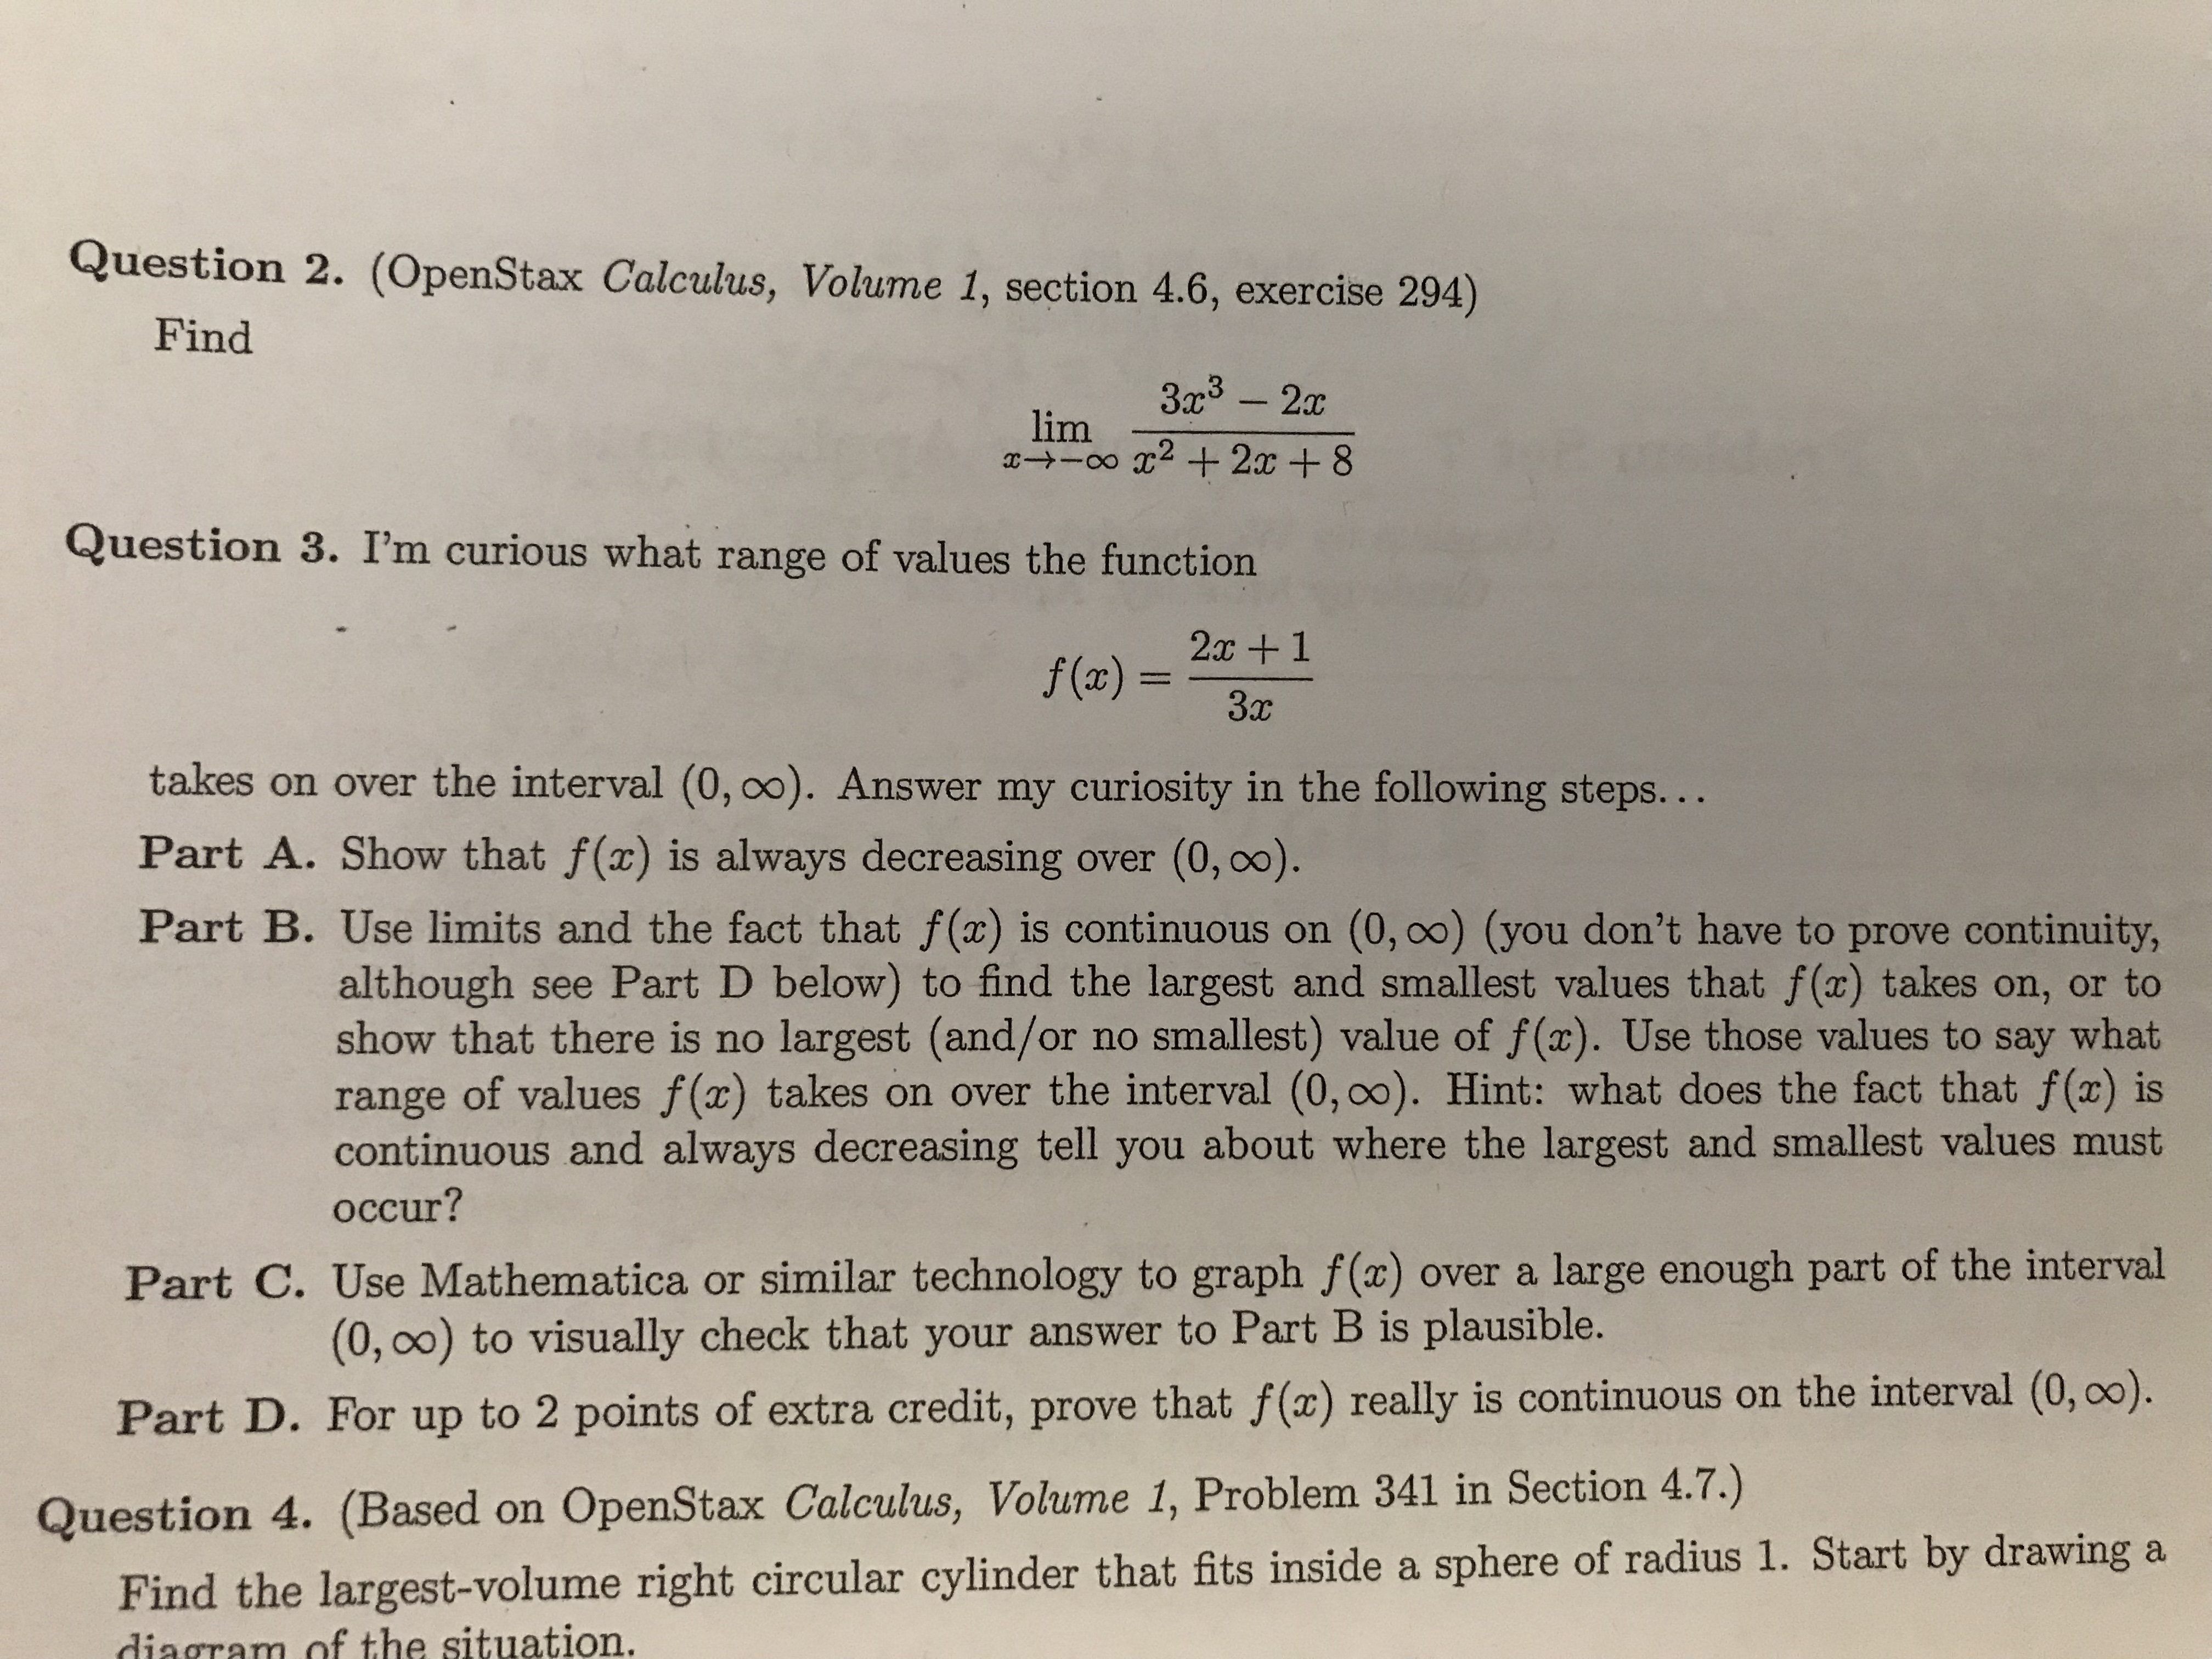 Question 2. (OpenStax Calculus, Volume 1, section 4.6, exercise 294) Find 3a3 -2 lim Question 3. I'm curious what range of values the function 2c+1 takes on over the interval (0, 00). Answer my curiosity in the following steps... Part A. Show that f (x) is always decreasing over (0, oo). Part B. Use limits and the fact that f(x) is continuous on (0, 00) (you don't have to prove continuity, although see Part D below) to find the largest and smallest values that f (x) takes on, or to show that there is no largest (and/or no smallest) value of f(x). Use those values to say what range of values f(x) takes on over the interval (0,00). Hint: what does the fact that f(x) is continuous and always decreasing tell you about where the largest and smallest values must occur? Part C. Use Mathematica or similar technology to graph f(x) over a large enough part of the interval (0, 0o) to visually check that your answer to Part B is plausible. Par t D. For up to 2 points of extra credit, prove that f(a) really is continuous on the interval (0, 00). Question 4. (Based on OpenStax Calculus, Volume 1, Problem 341 in Section 4.7.) Find the largest-volume right circular cylinder that fits inside a sphere of radius 1. Start by drawing a diagram of the situation